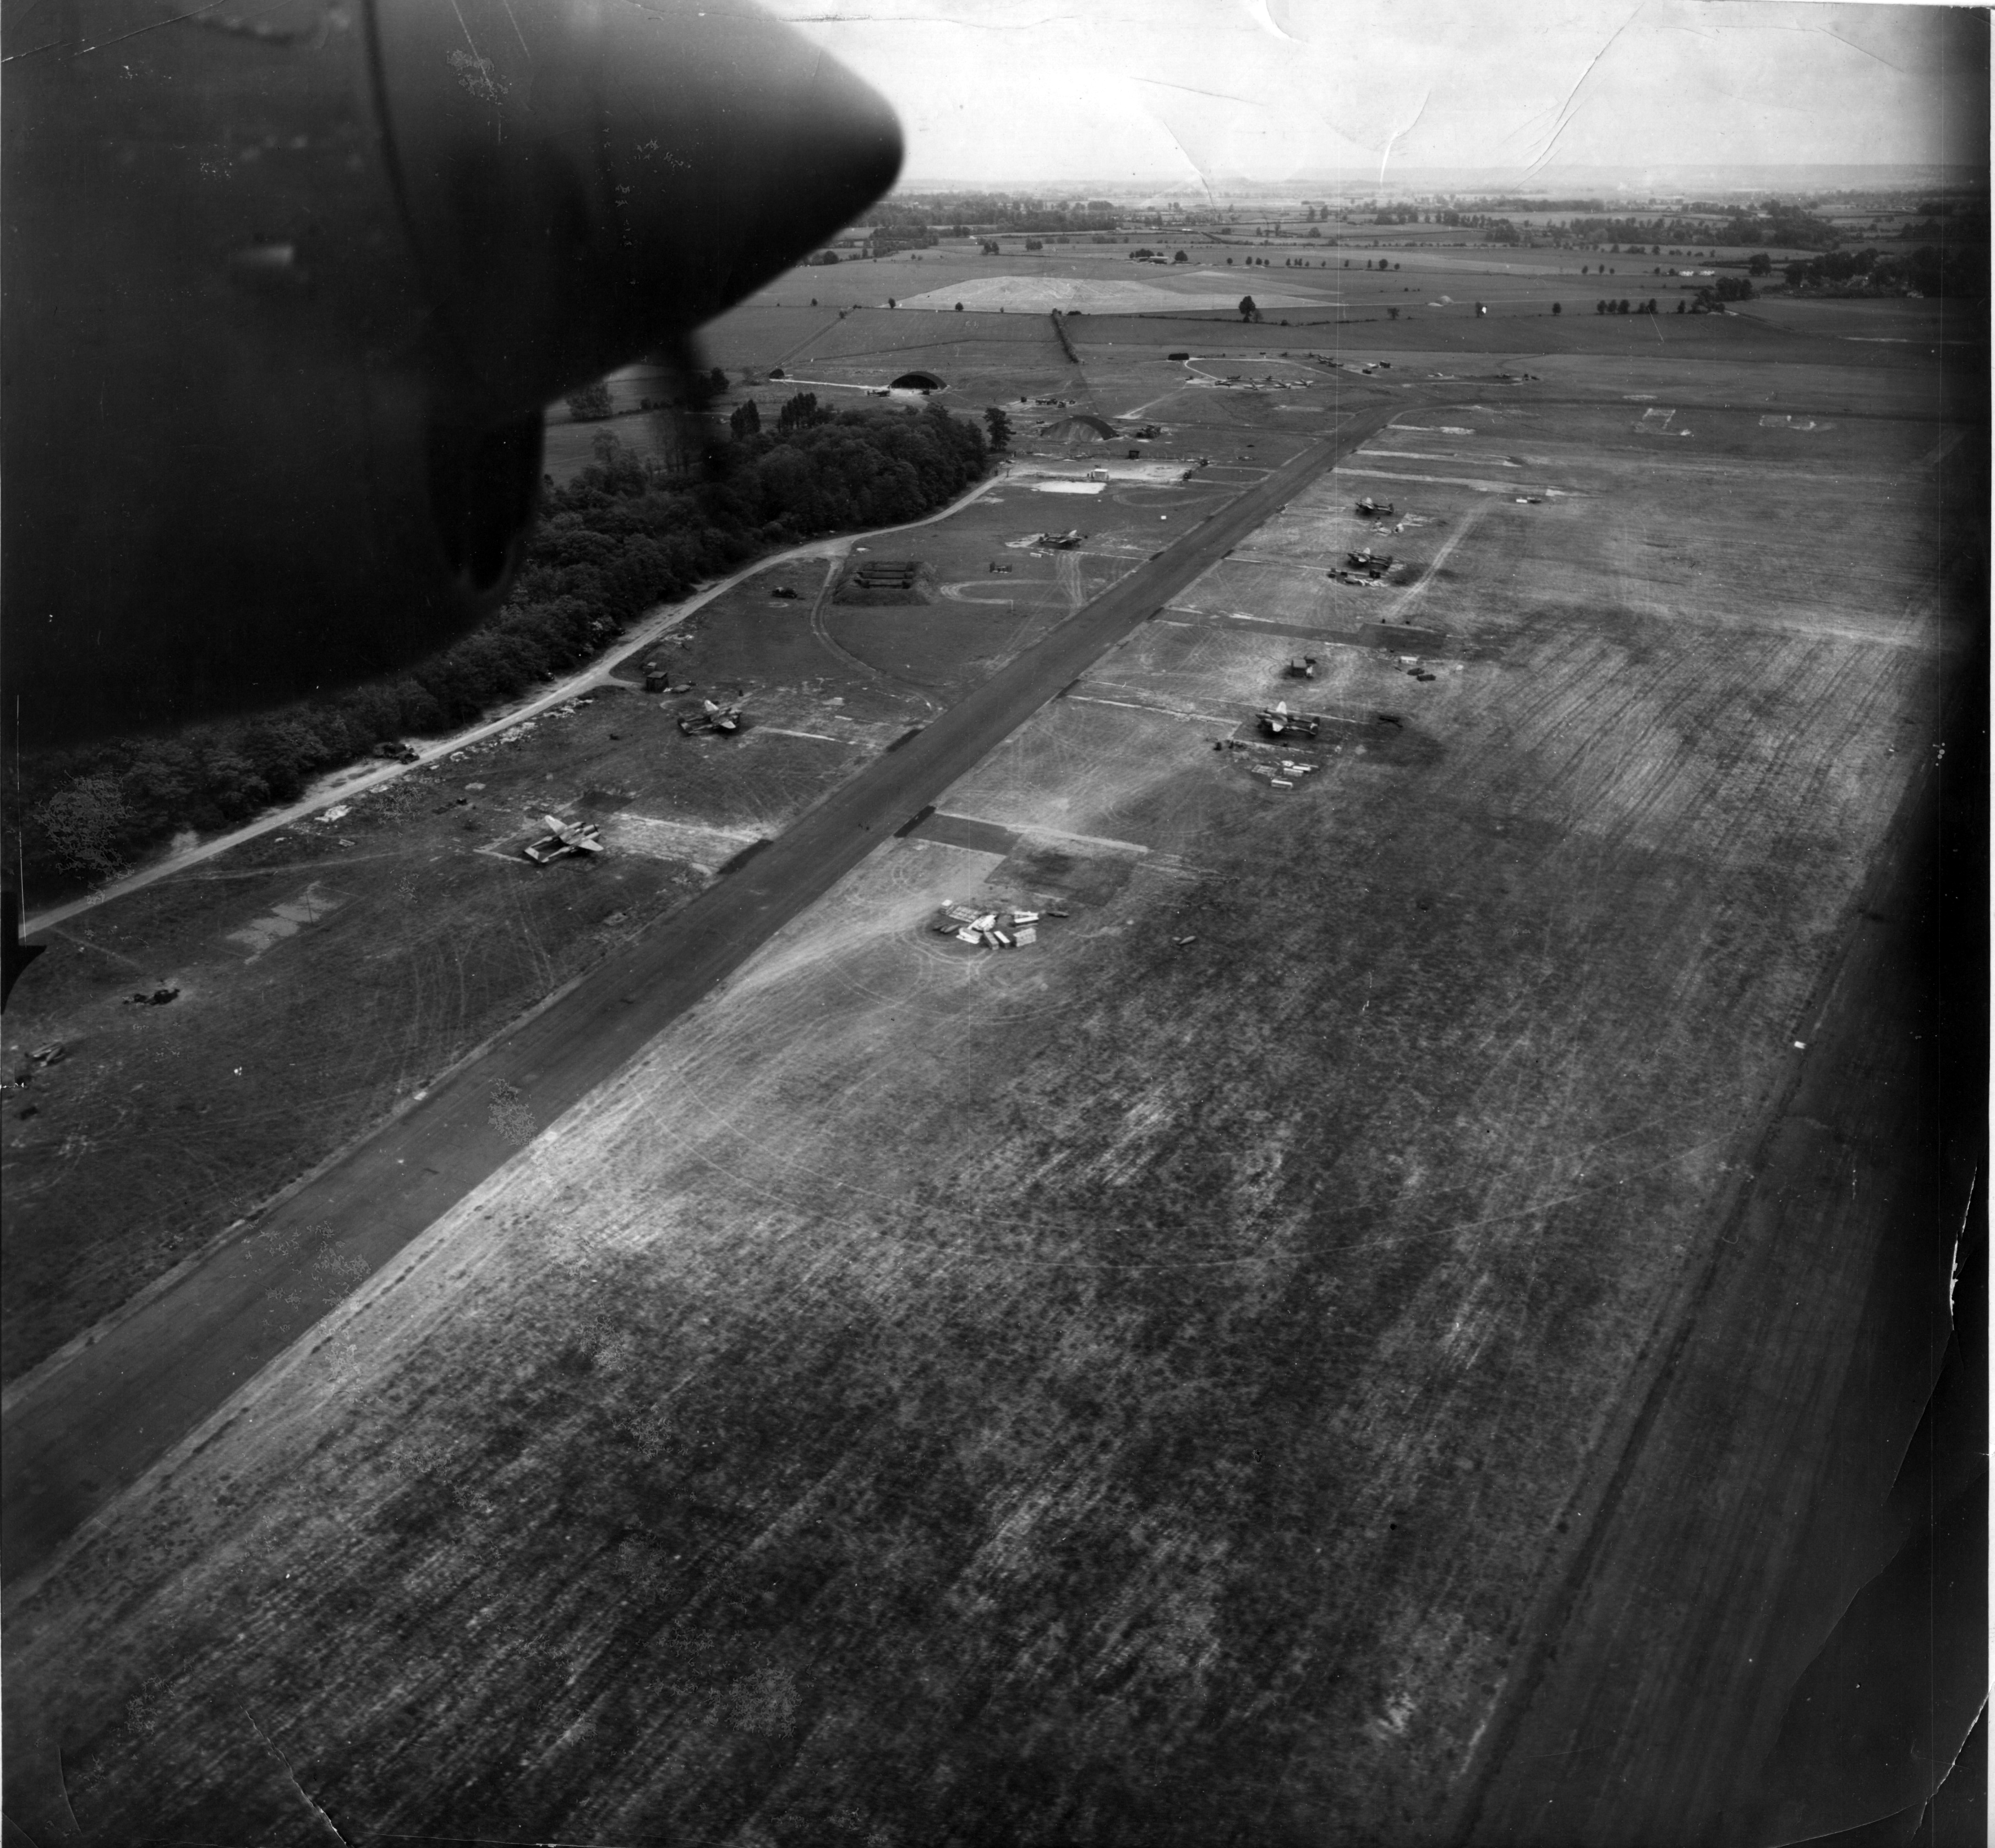 Airbase American 7th Photo Group USAAF base at Mount Farm Oxfordshire UK 1944 01